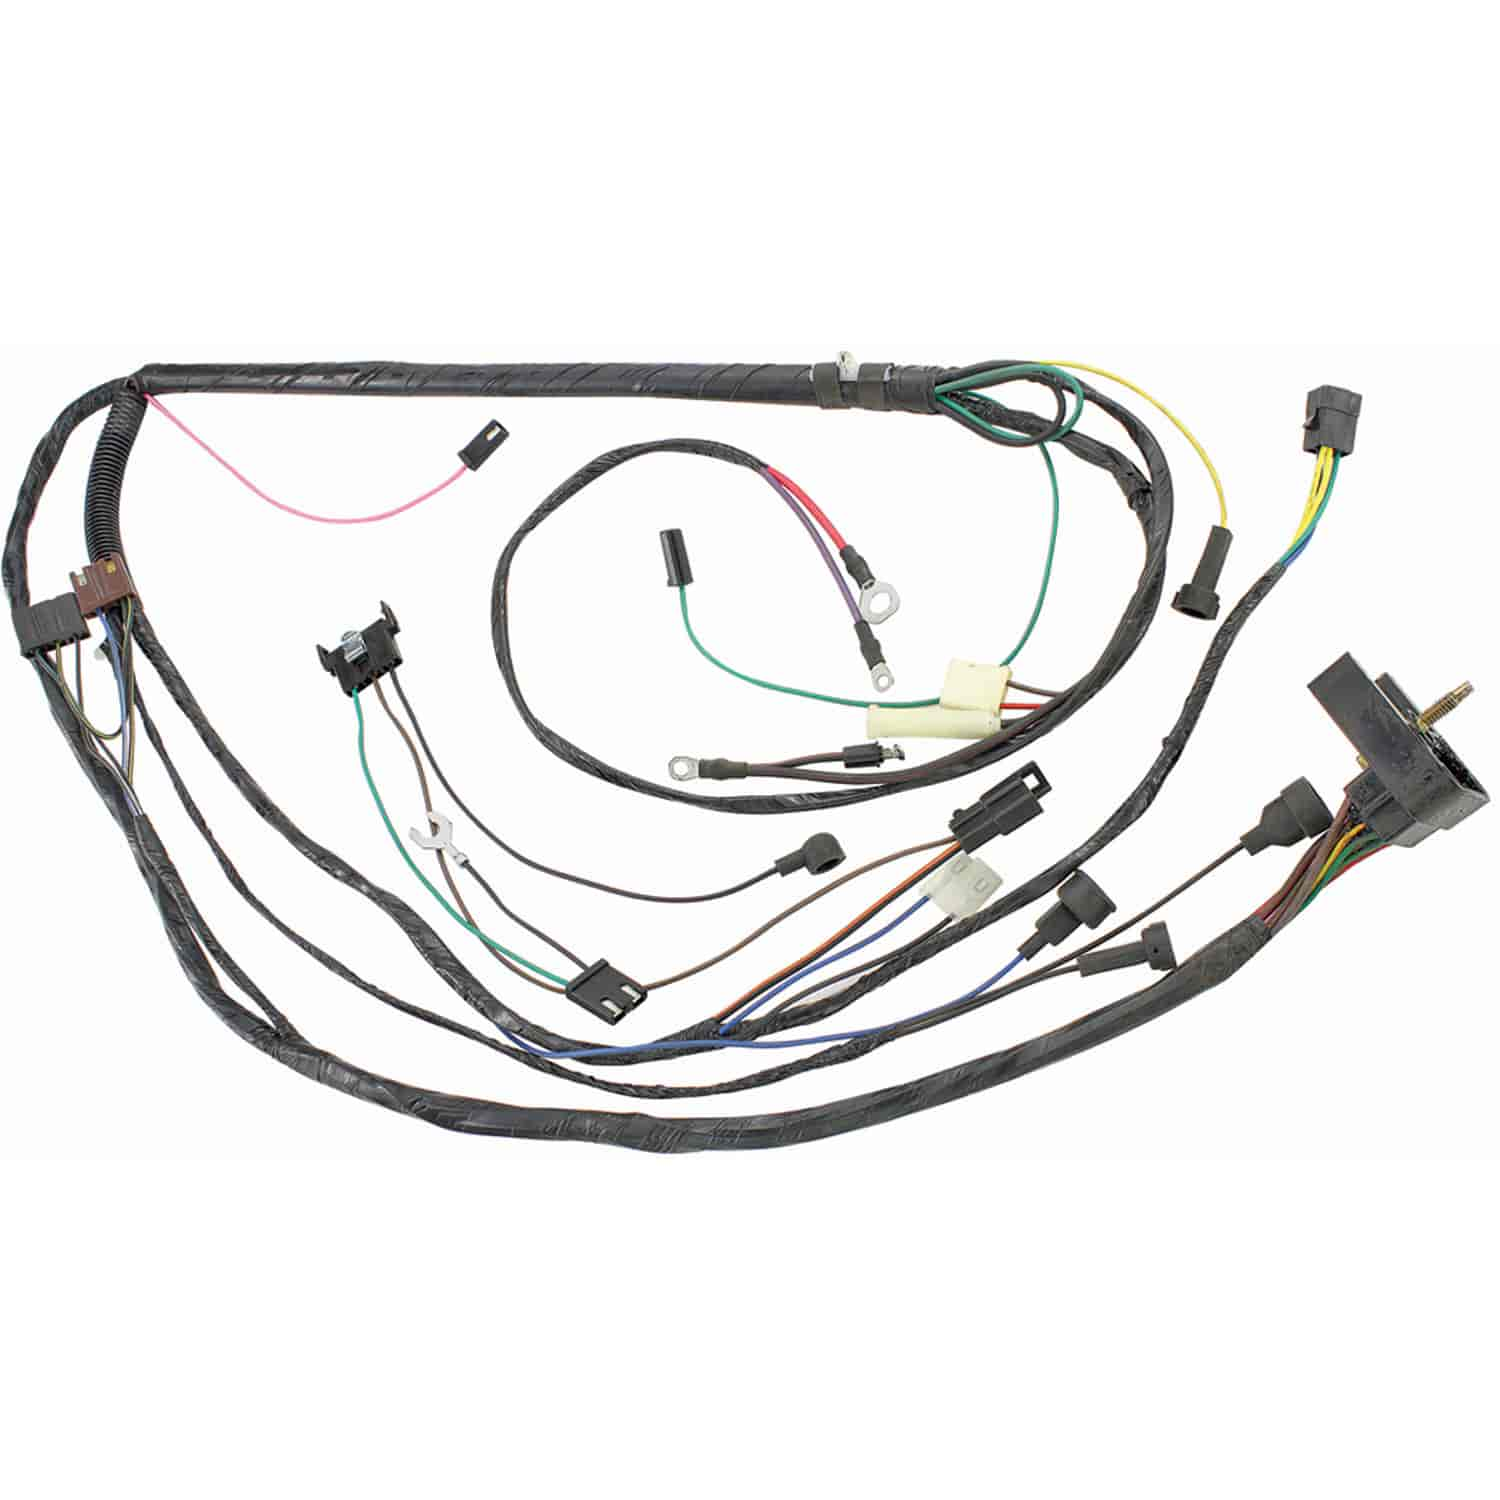 Restoparts Wiring Harness Engine Bonn Cat